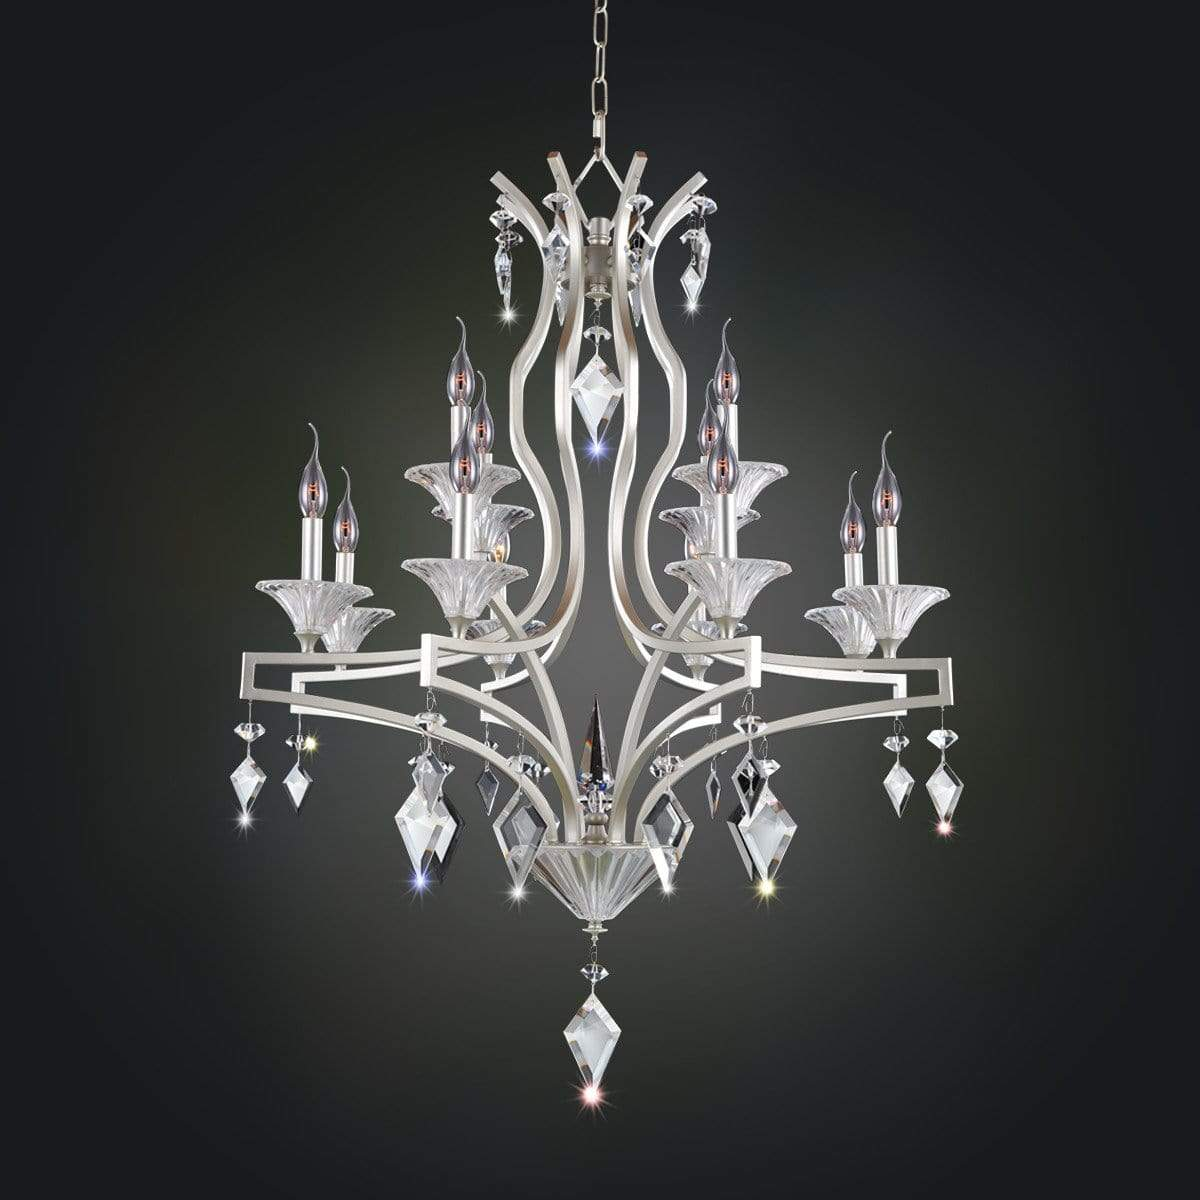 Allegri by Kalco Lighting Chandeliers Tarnished Silver / Firenze Clear Florence 12 Light Chandelier From Allegri by Kalco Lighting 11676